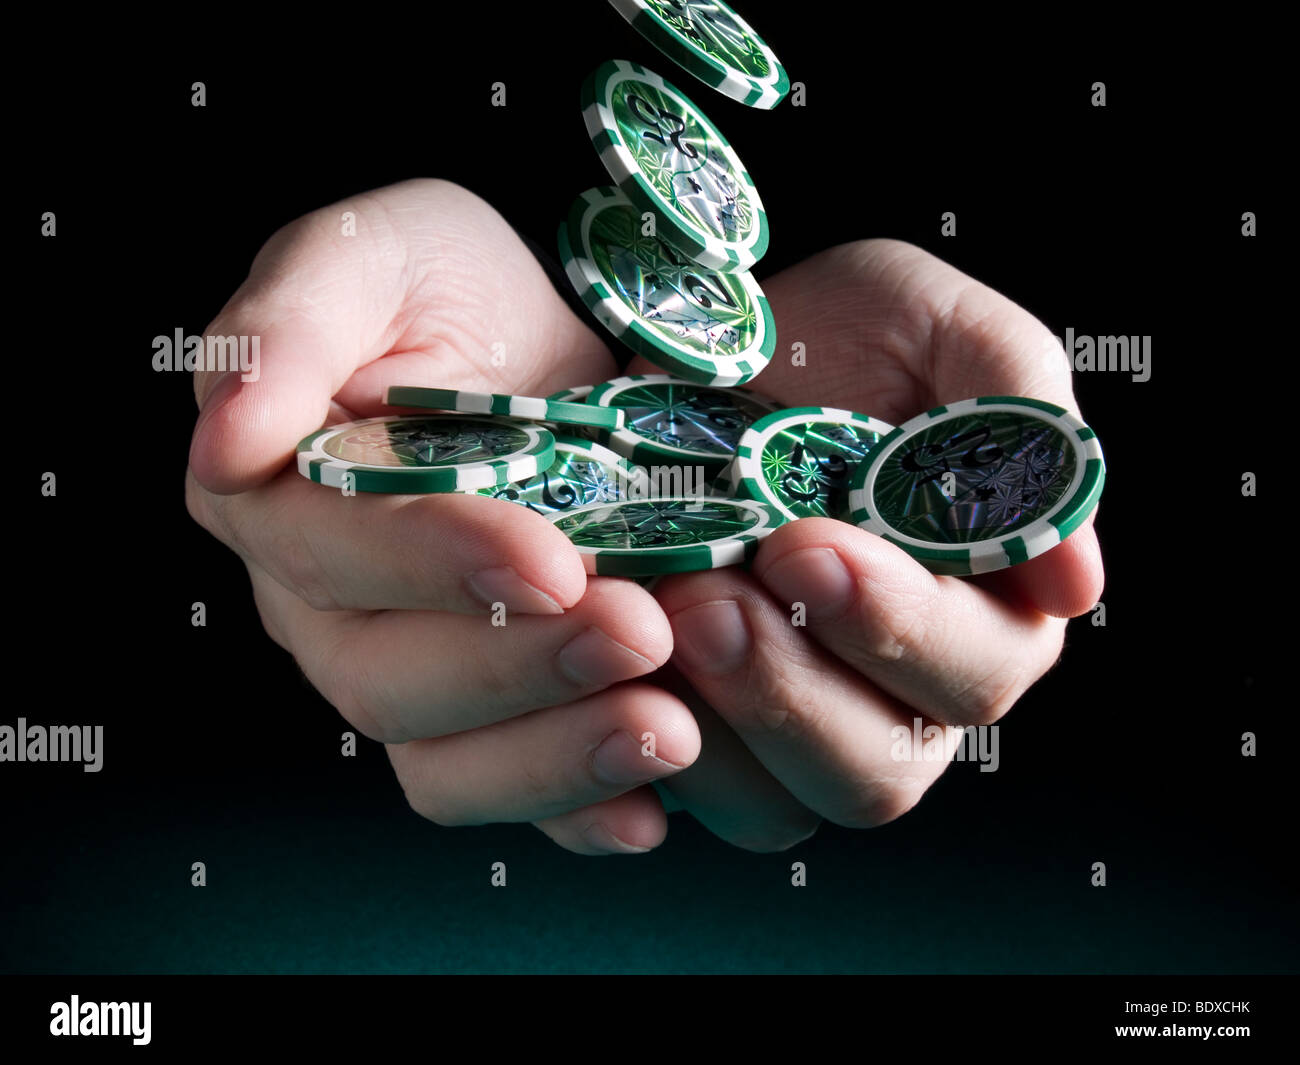 Several green twenty five valued chips falling on a pair of hands isolated over a black background. - Stock Image